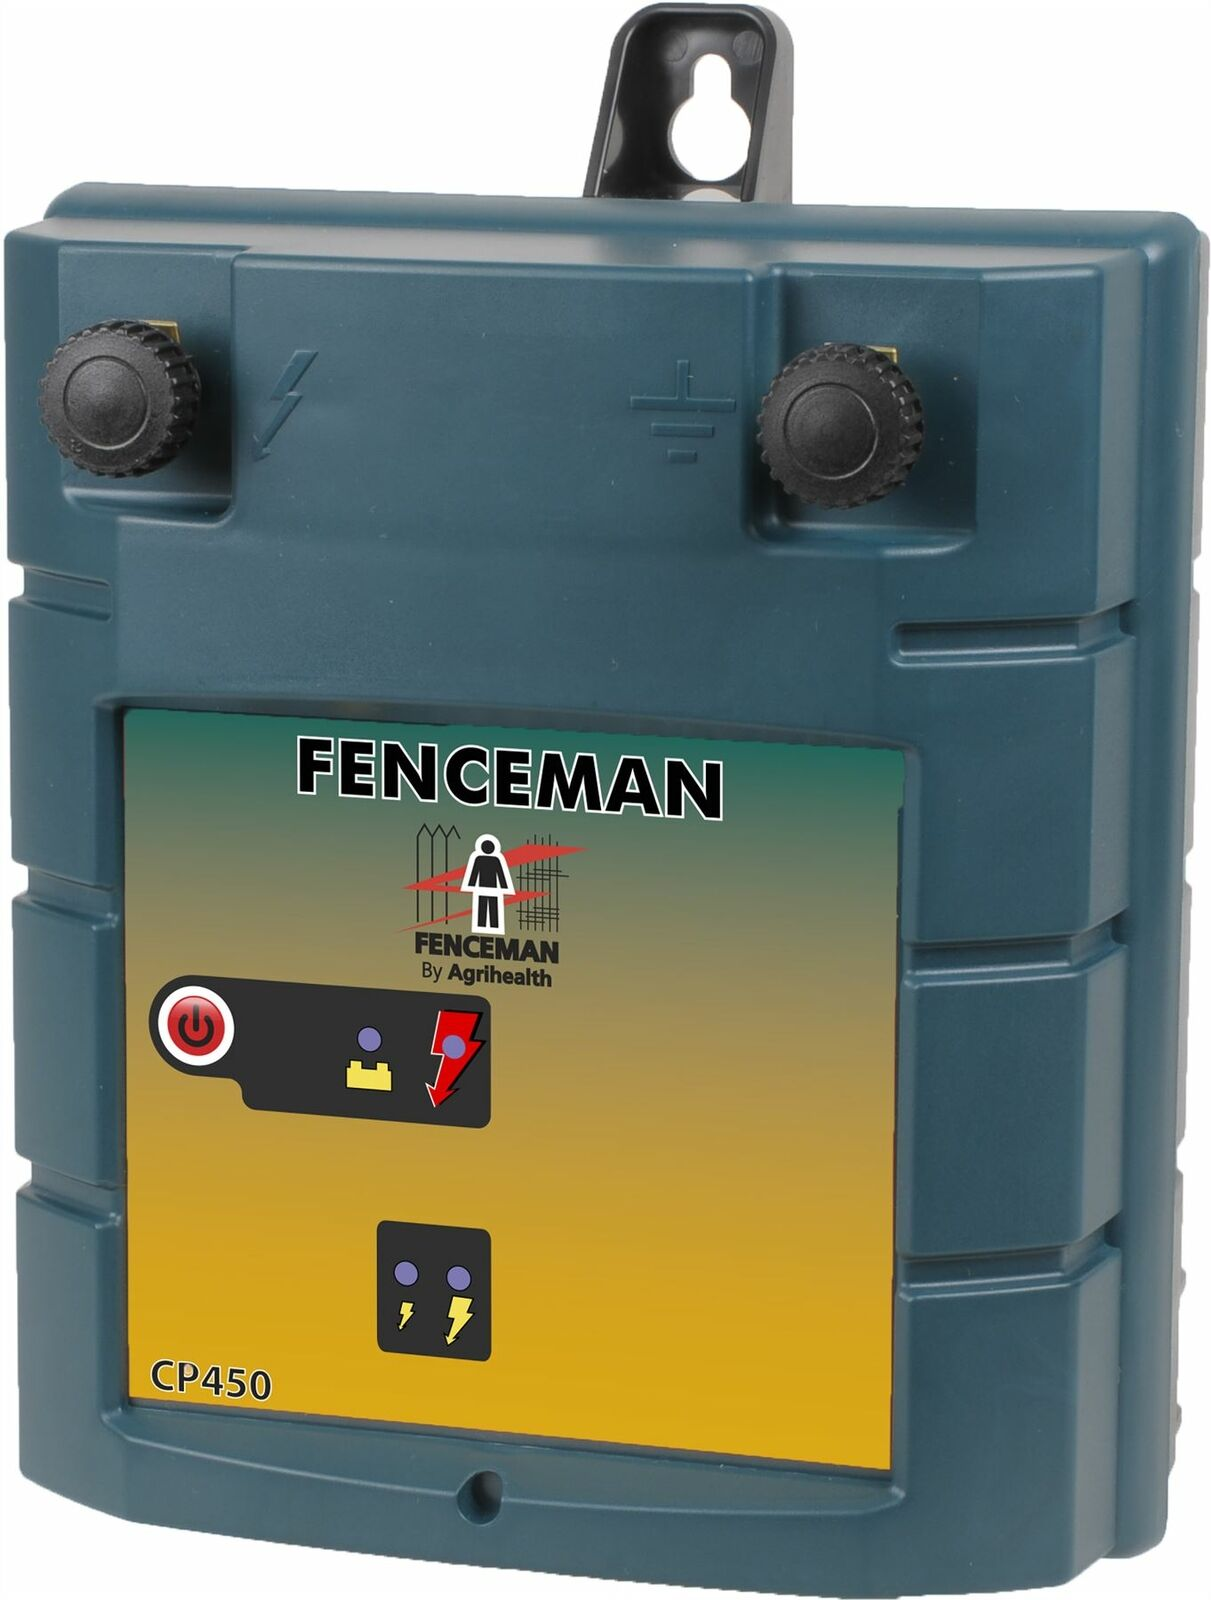 FENCEMAN CP450 12 VOLT ELECTRIC FENCE   FENCING BATTERY ENERGISER